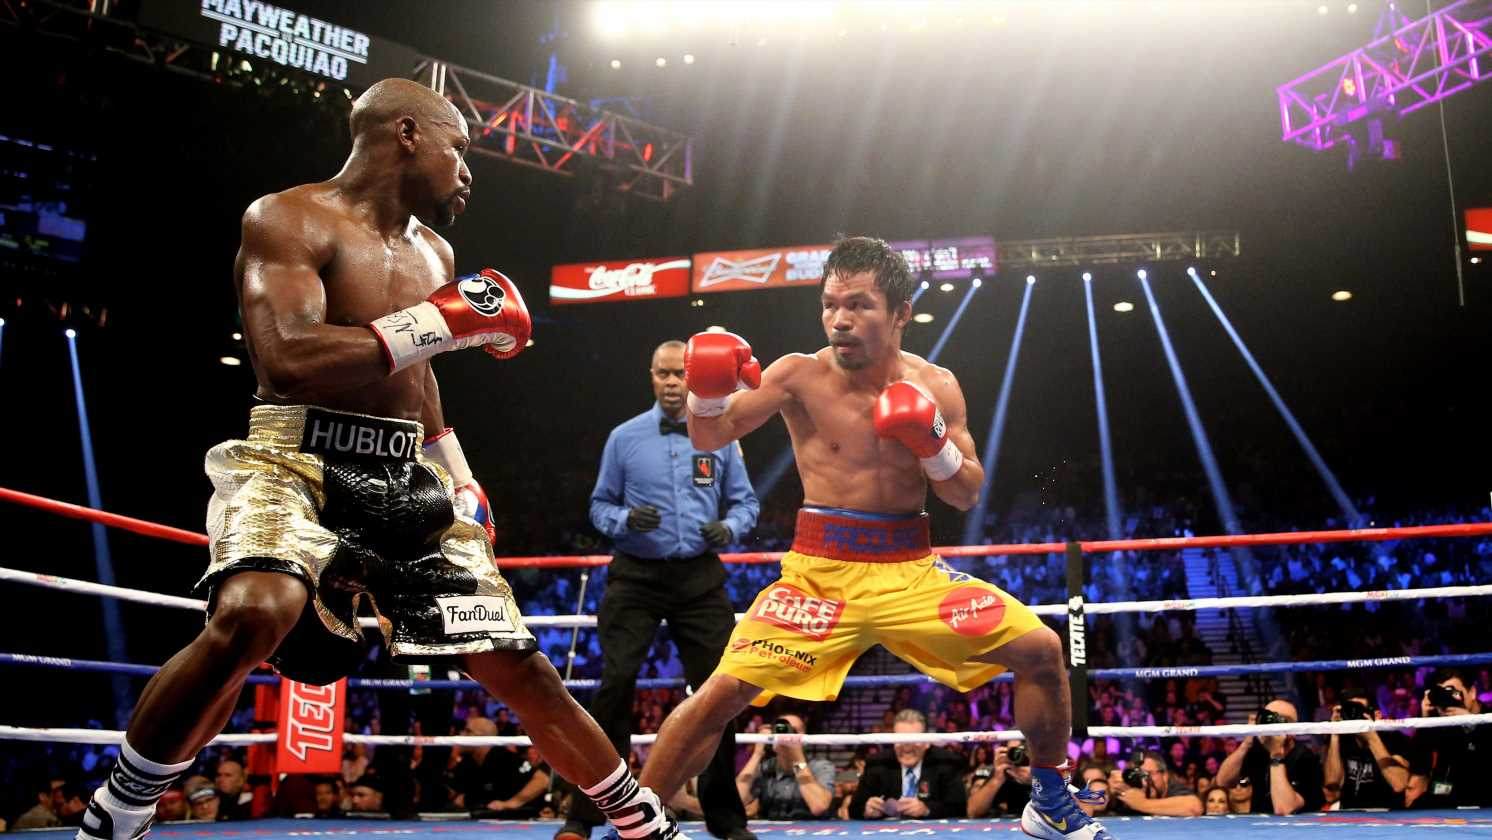 Floyd Mayweather Jr., Manny Pacquiao spar on social media, stirring up rematch hype